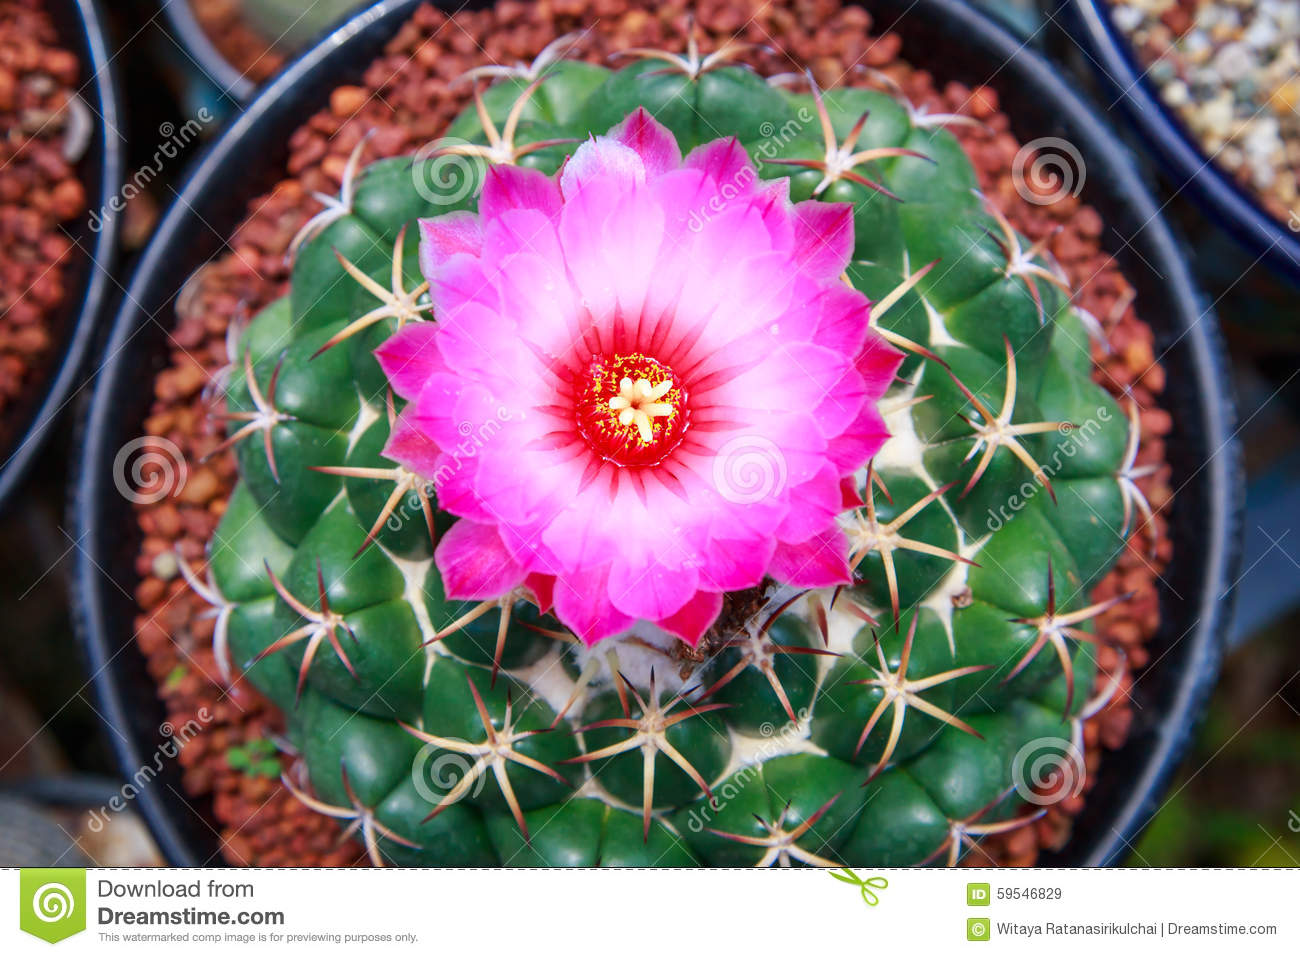 Abstract Cactus Flower Top View In Flower Pot Stock Photo